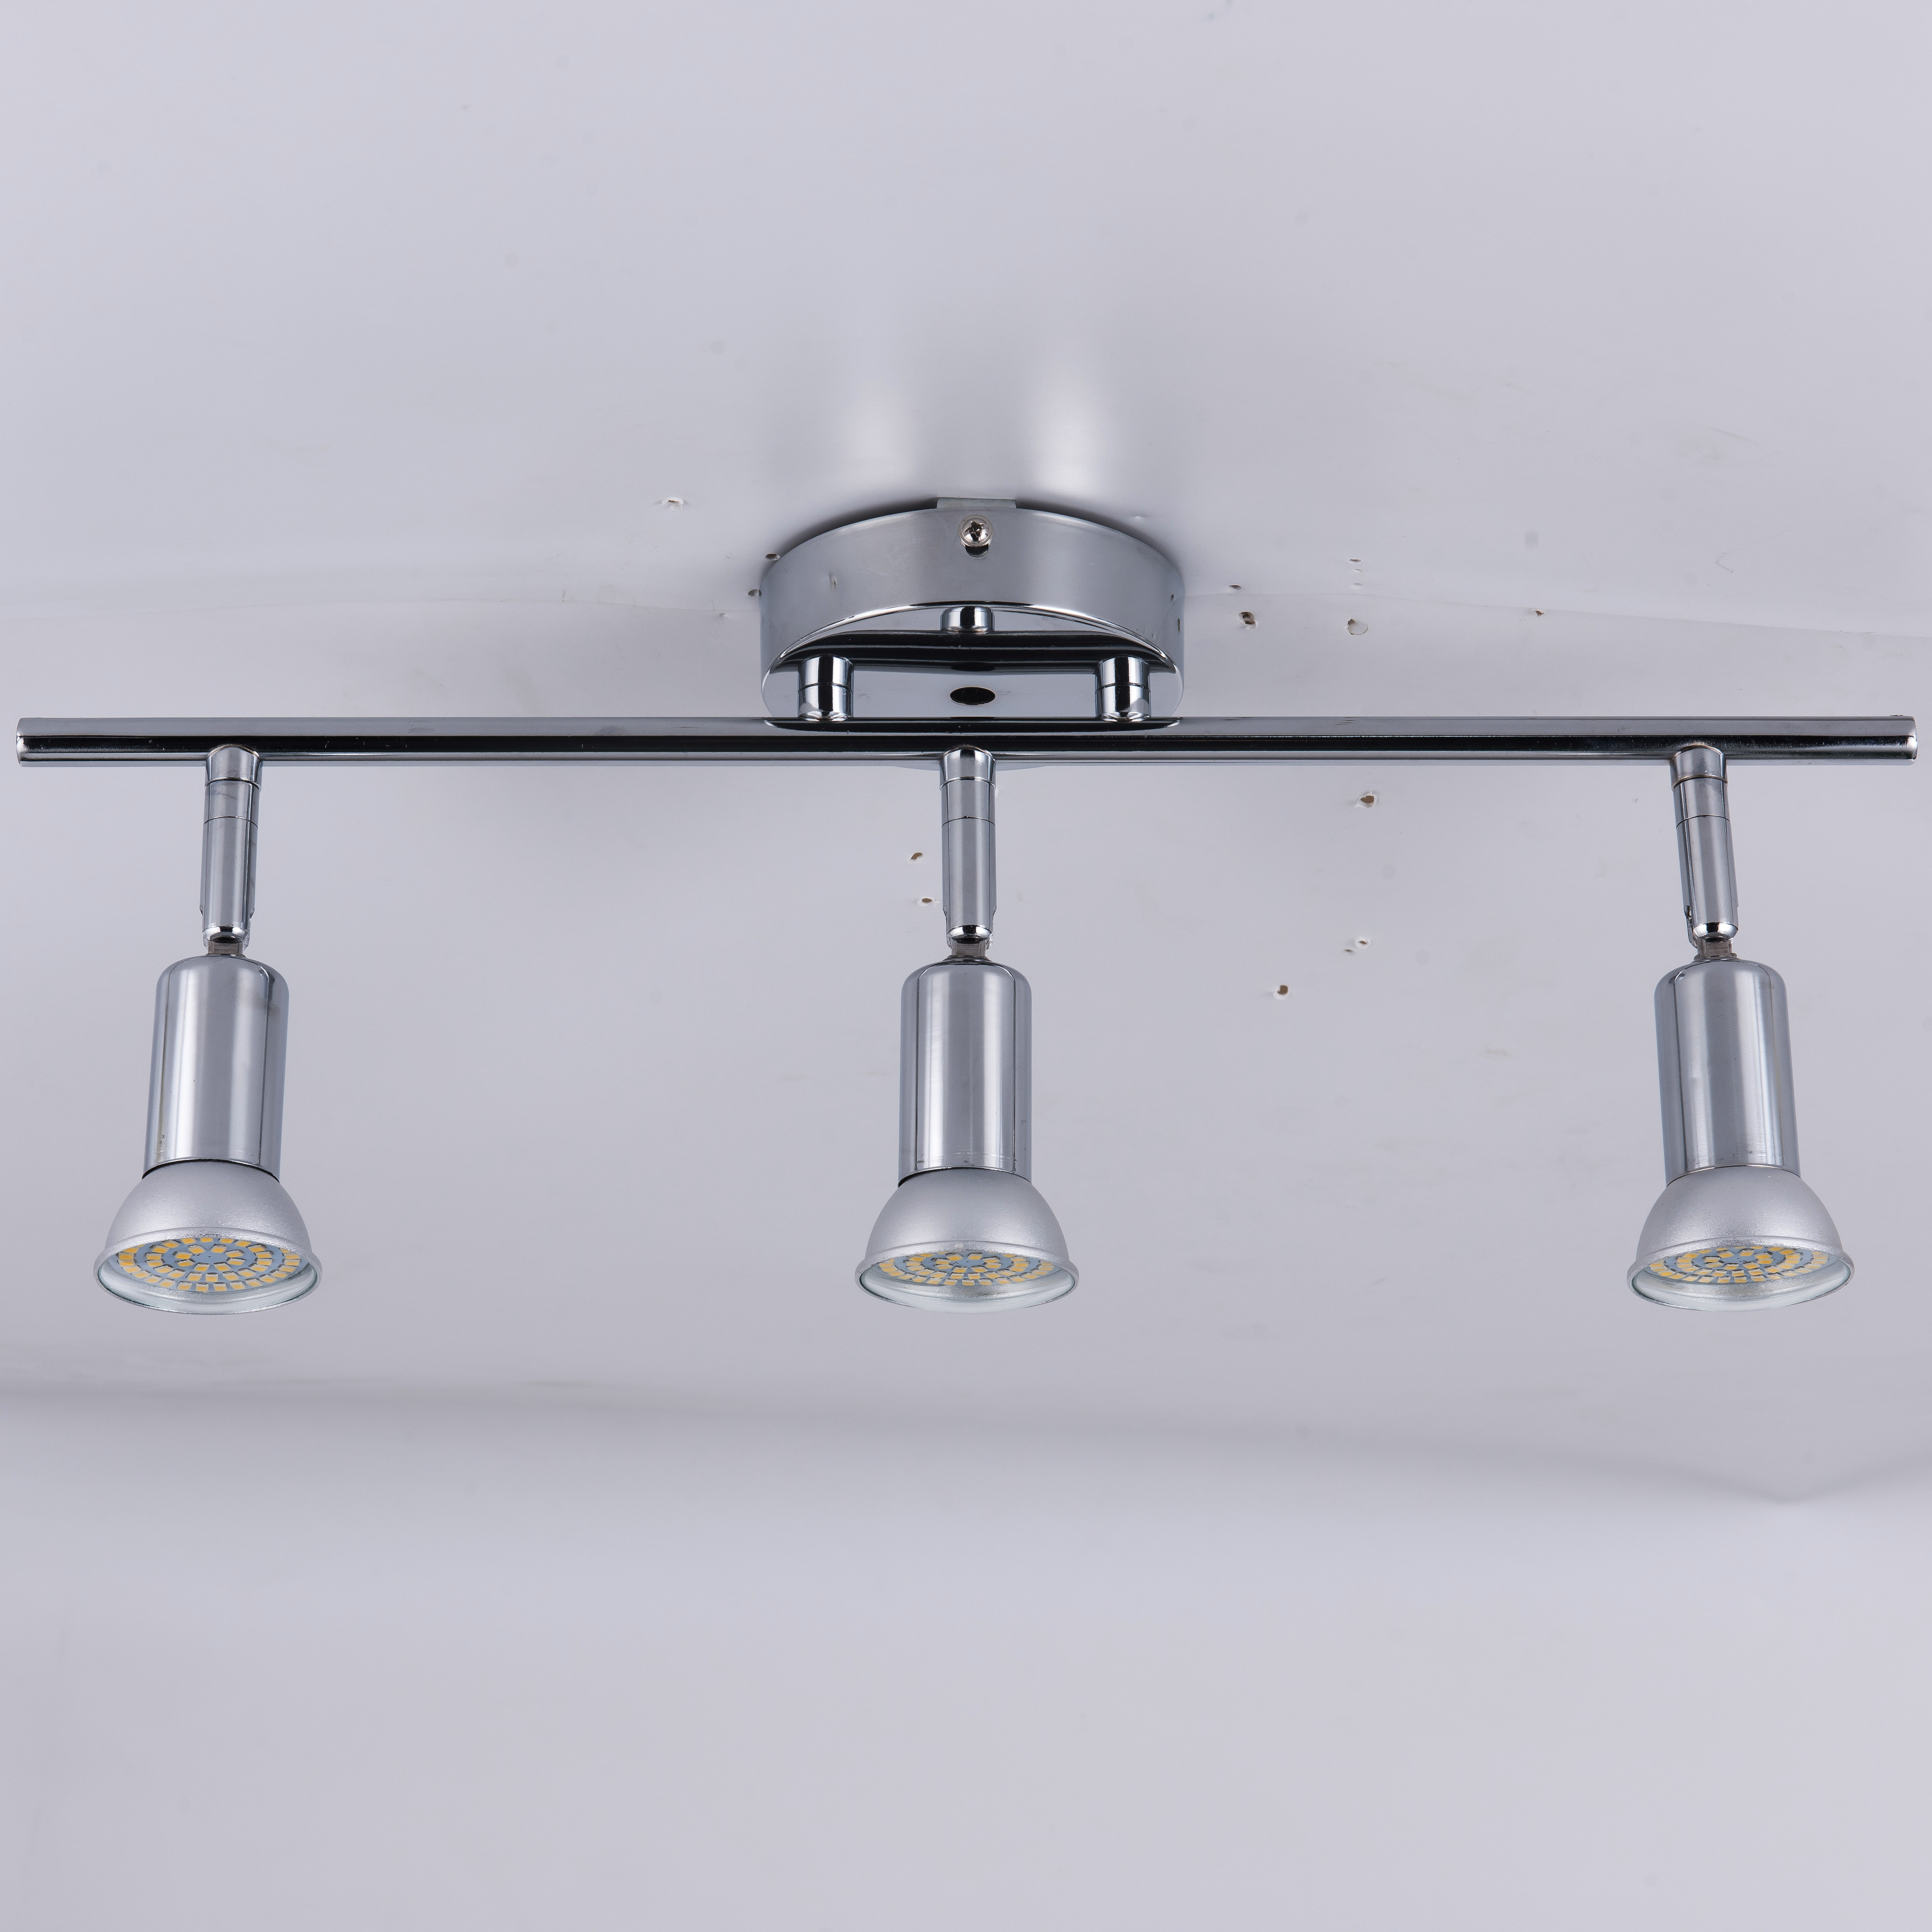 silver flexibly rotatable light head without bulbs 4 heads ceiling light stainless steel wall mounted spot